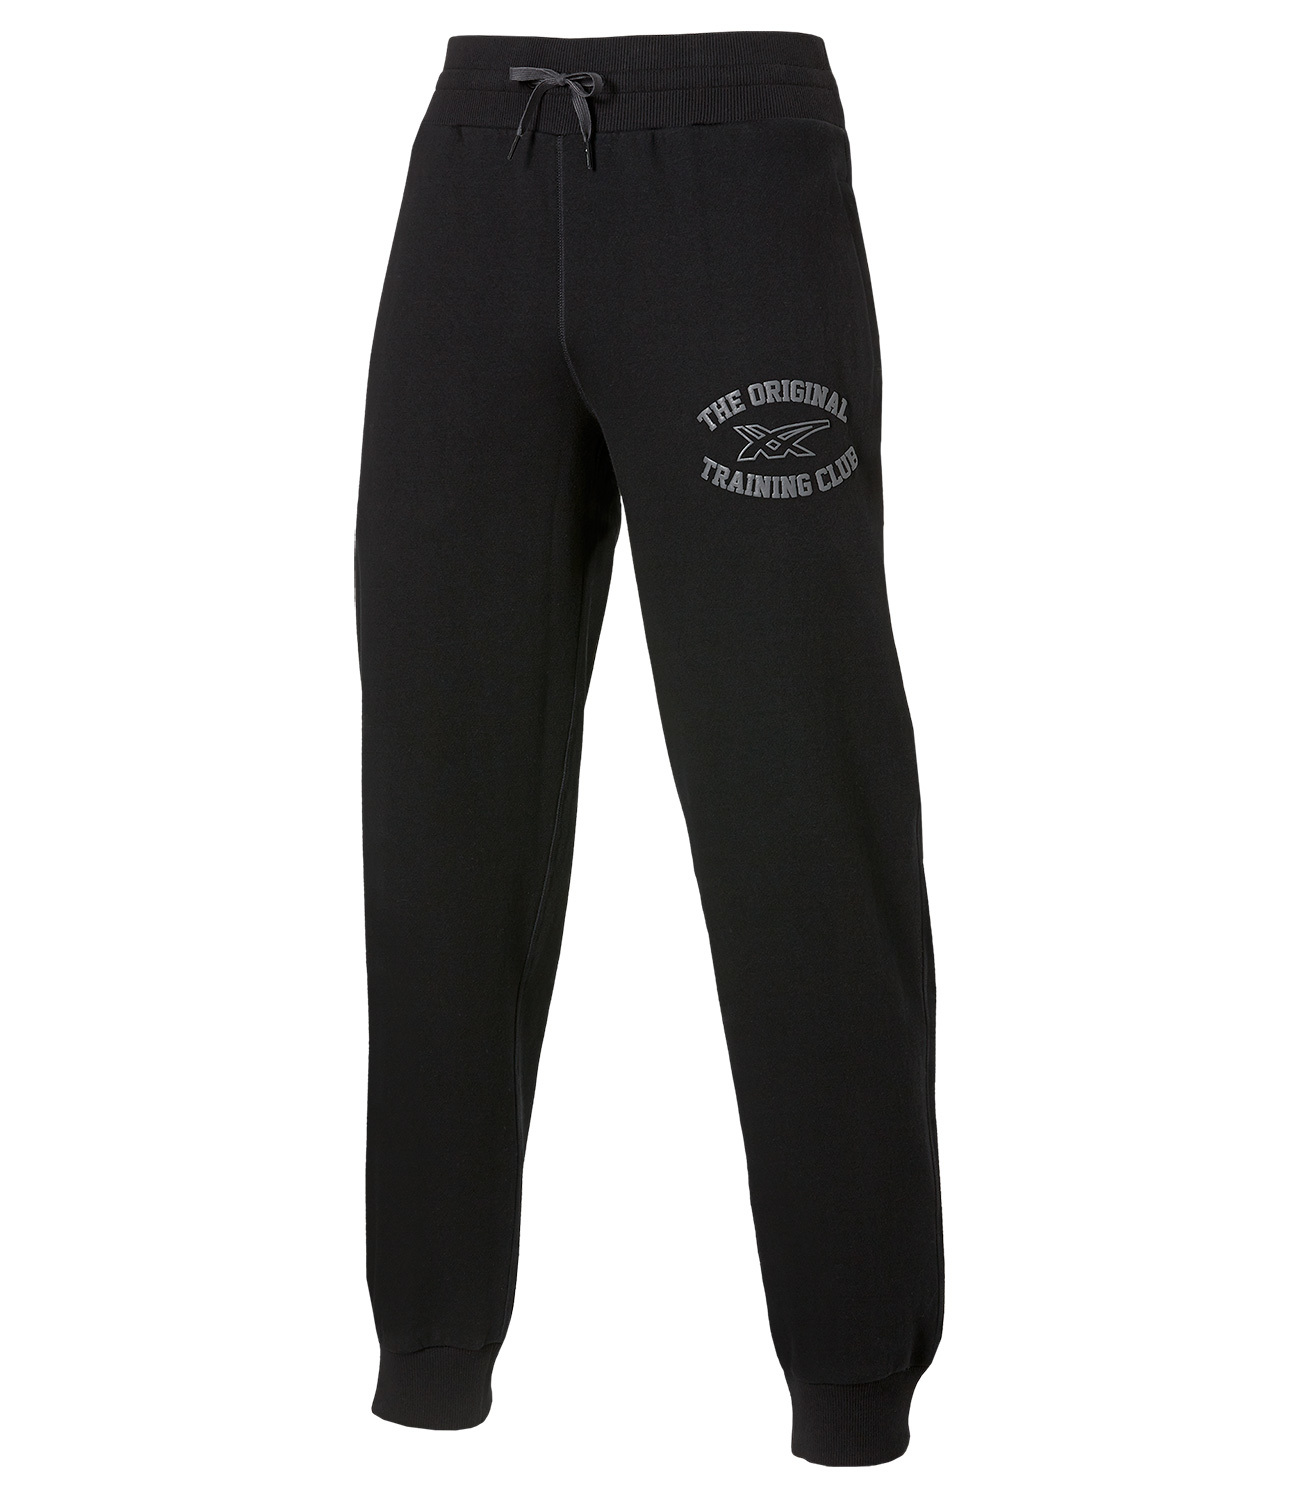 Мужские спортивные штаны Asics Graphic Cuffed Pant (131534 0904) черные